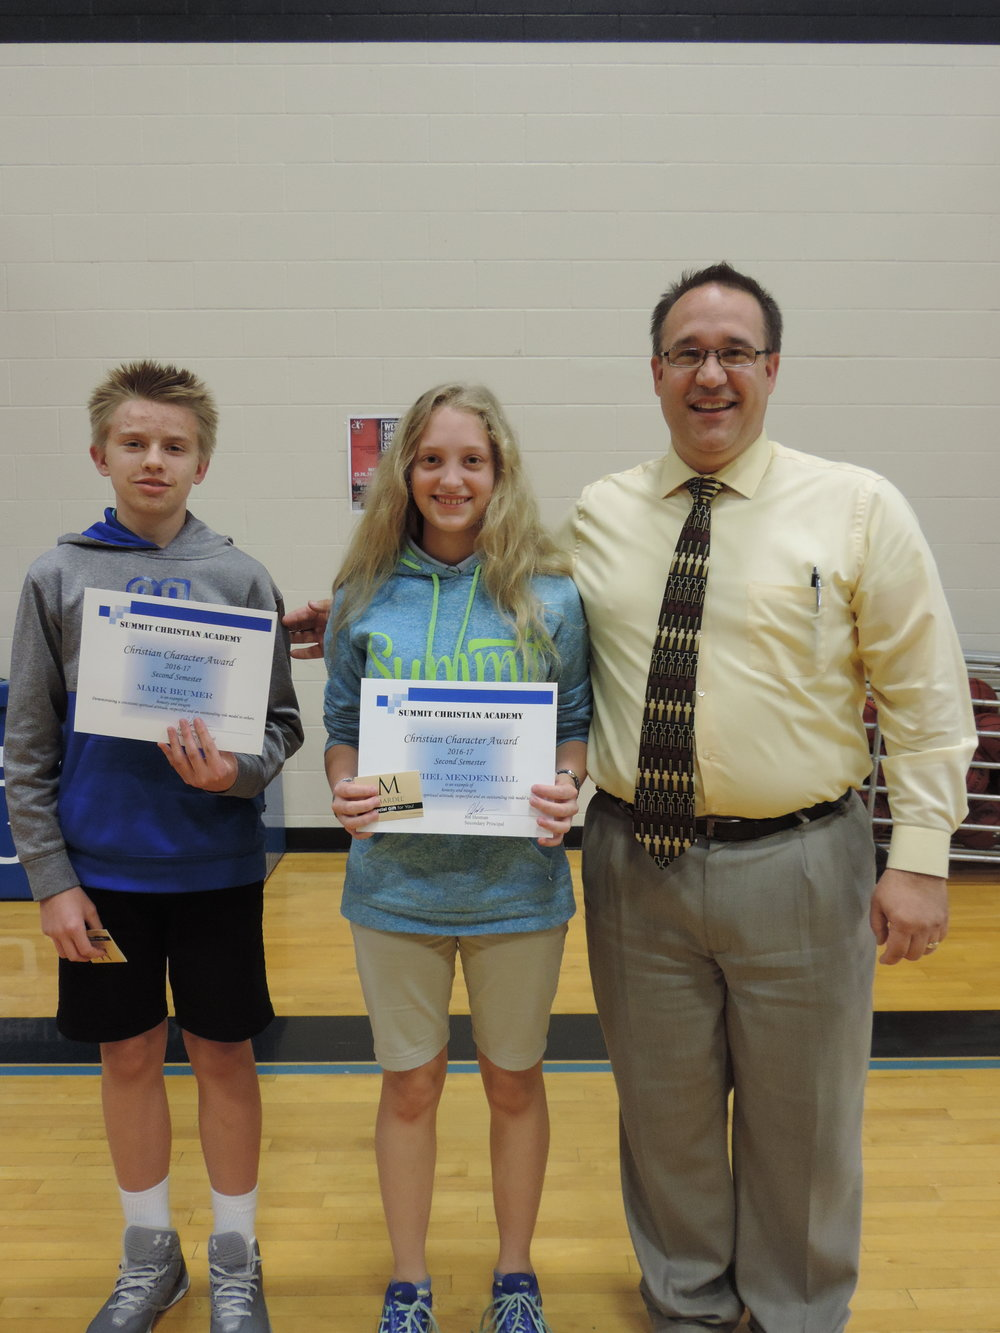 SCA seventh grade students Mark Beumer and Rachel Mendenhall, pictured with SCA Secondary Principal Joe Hesman, received the Christian Character Award for second semester.